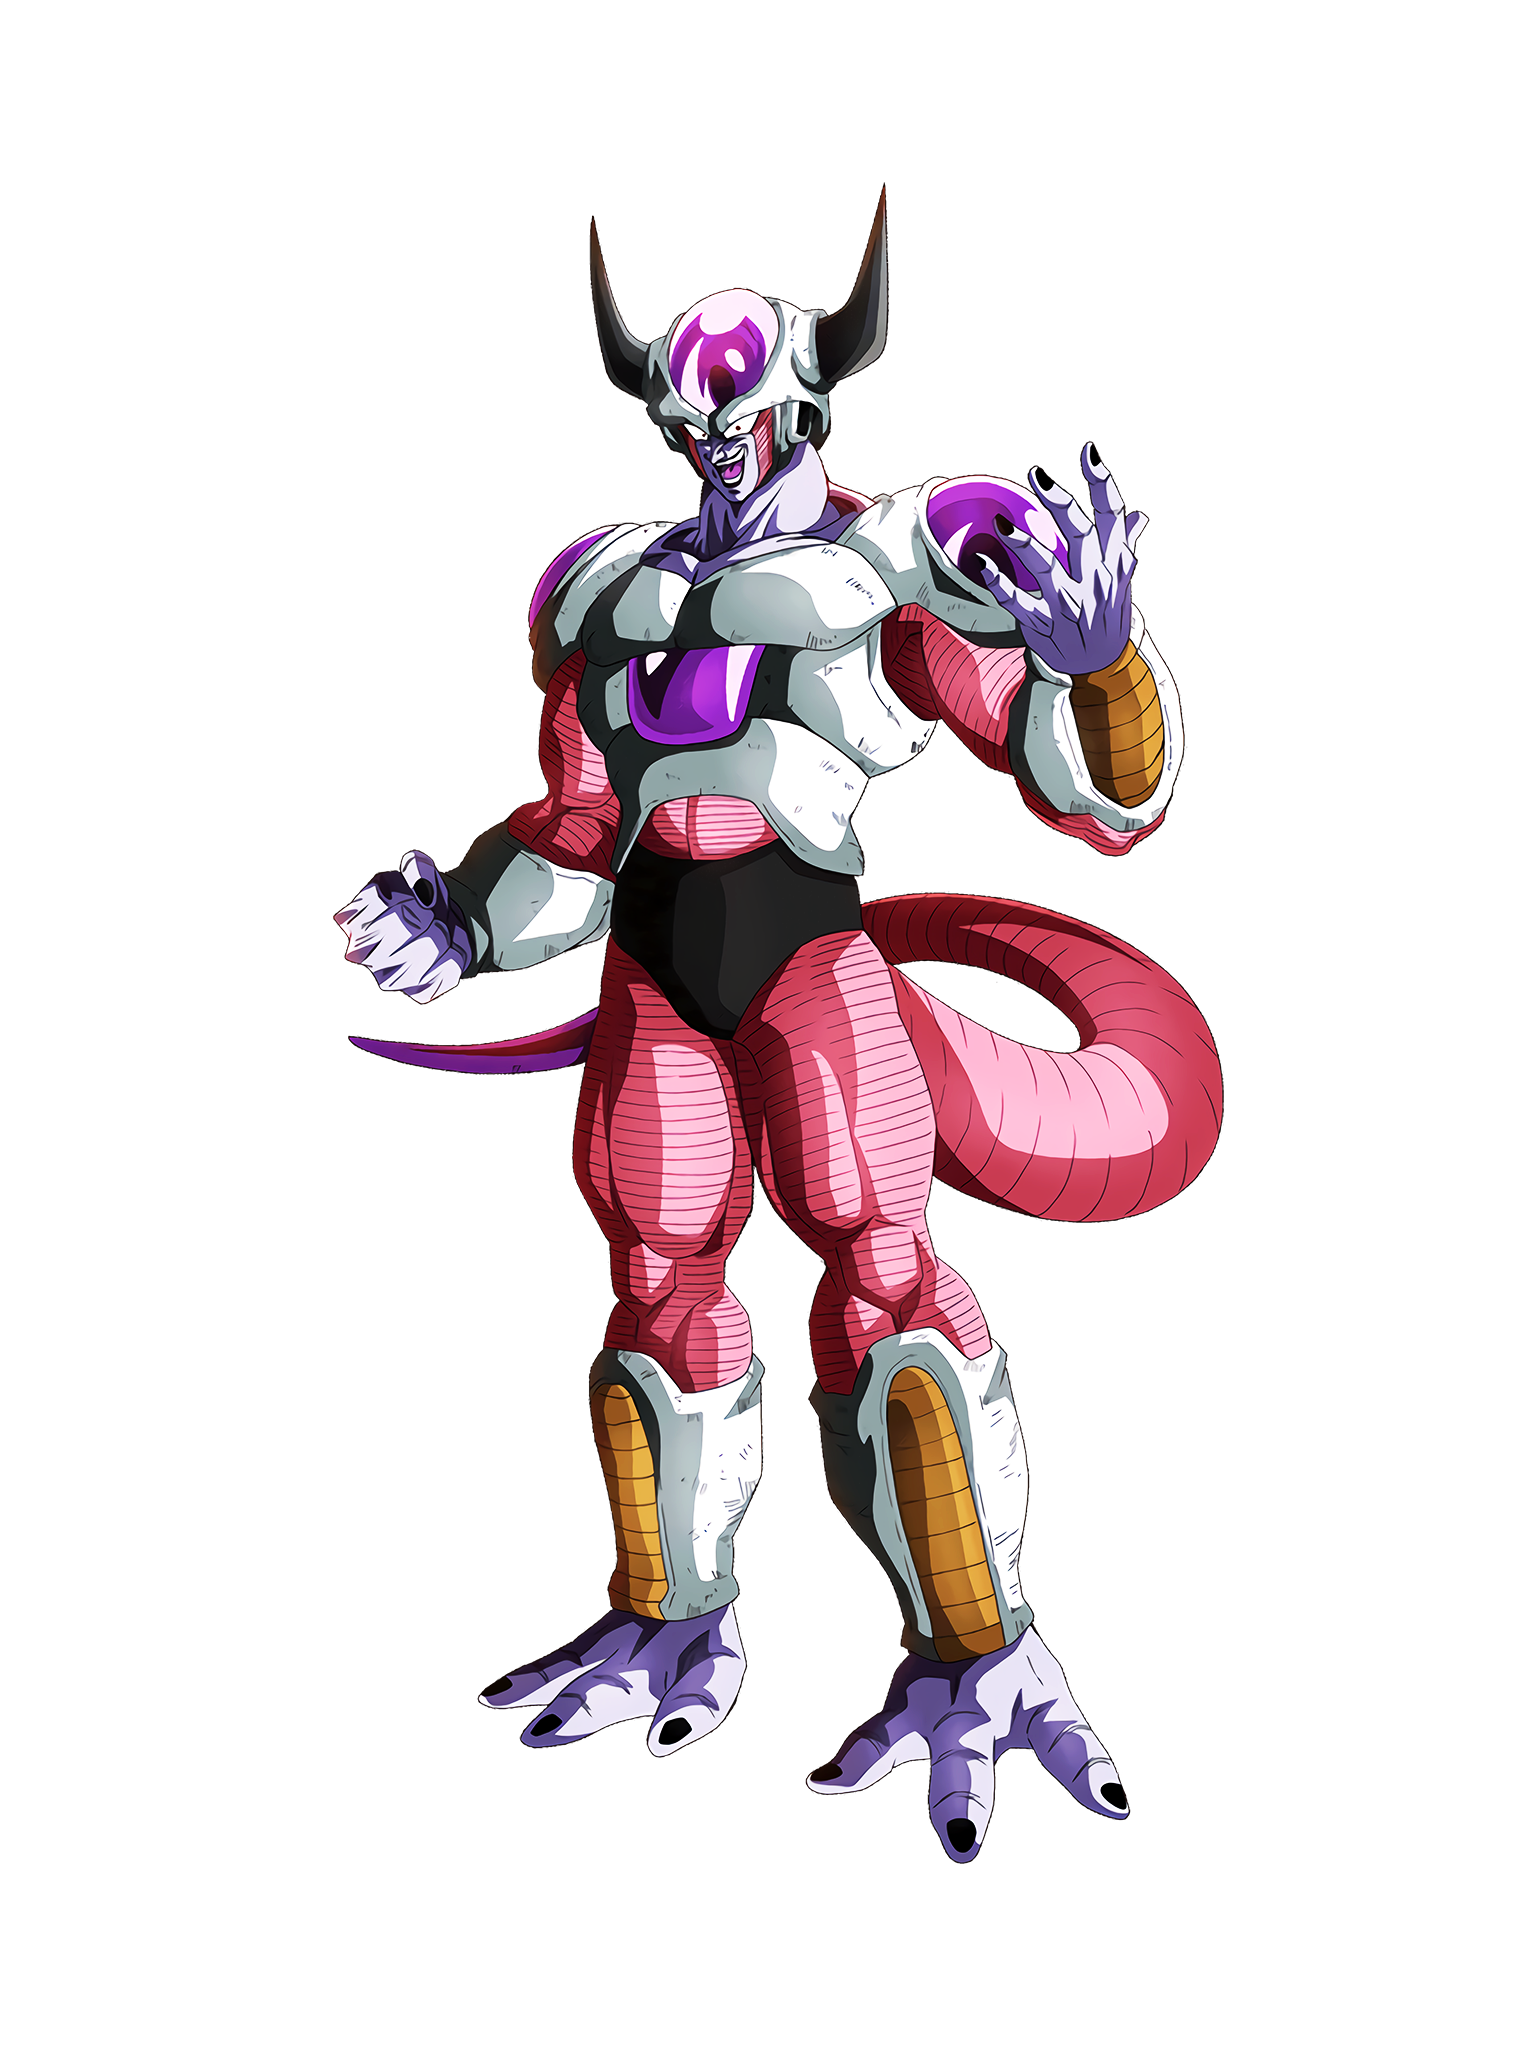 Glacial Prestige Frieza 2nd Form Render (Dragon Ball Z Dokkan Battle) .png